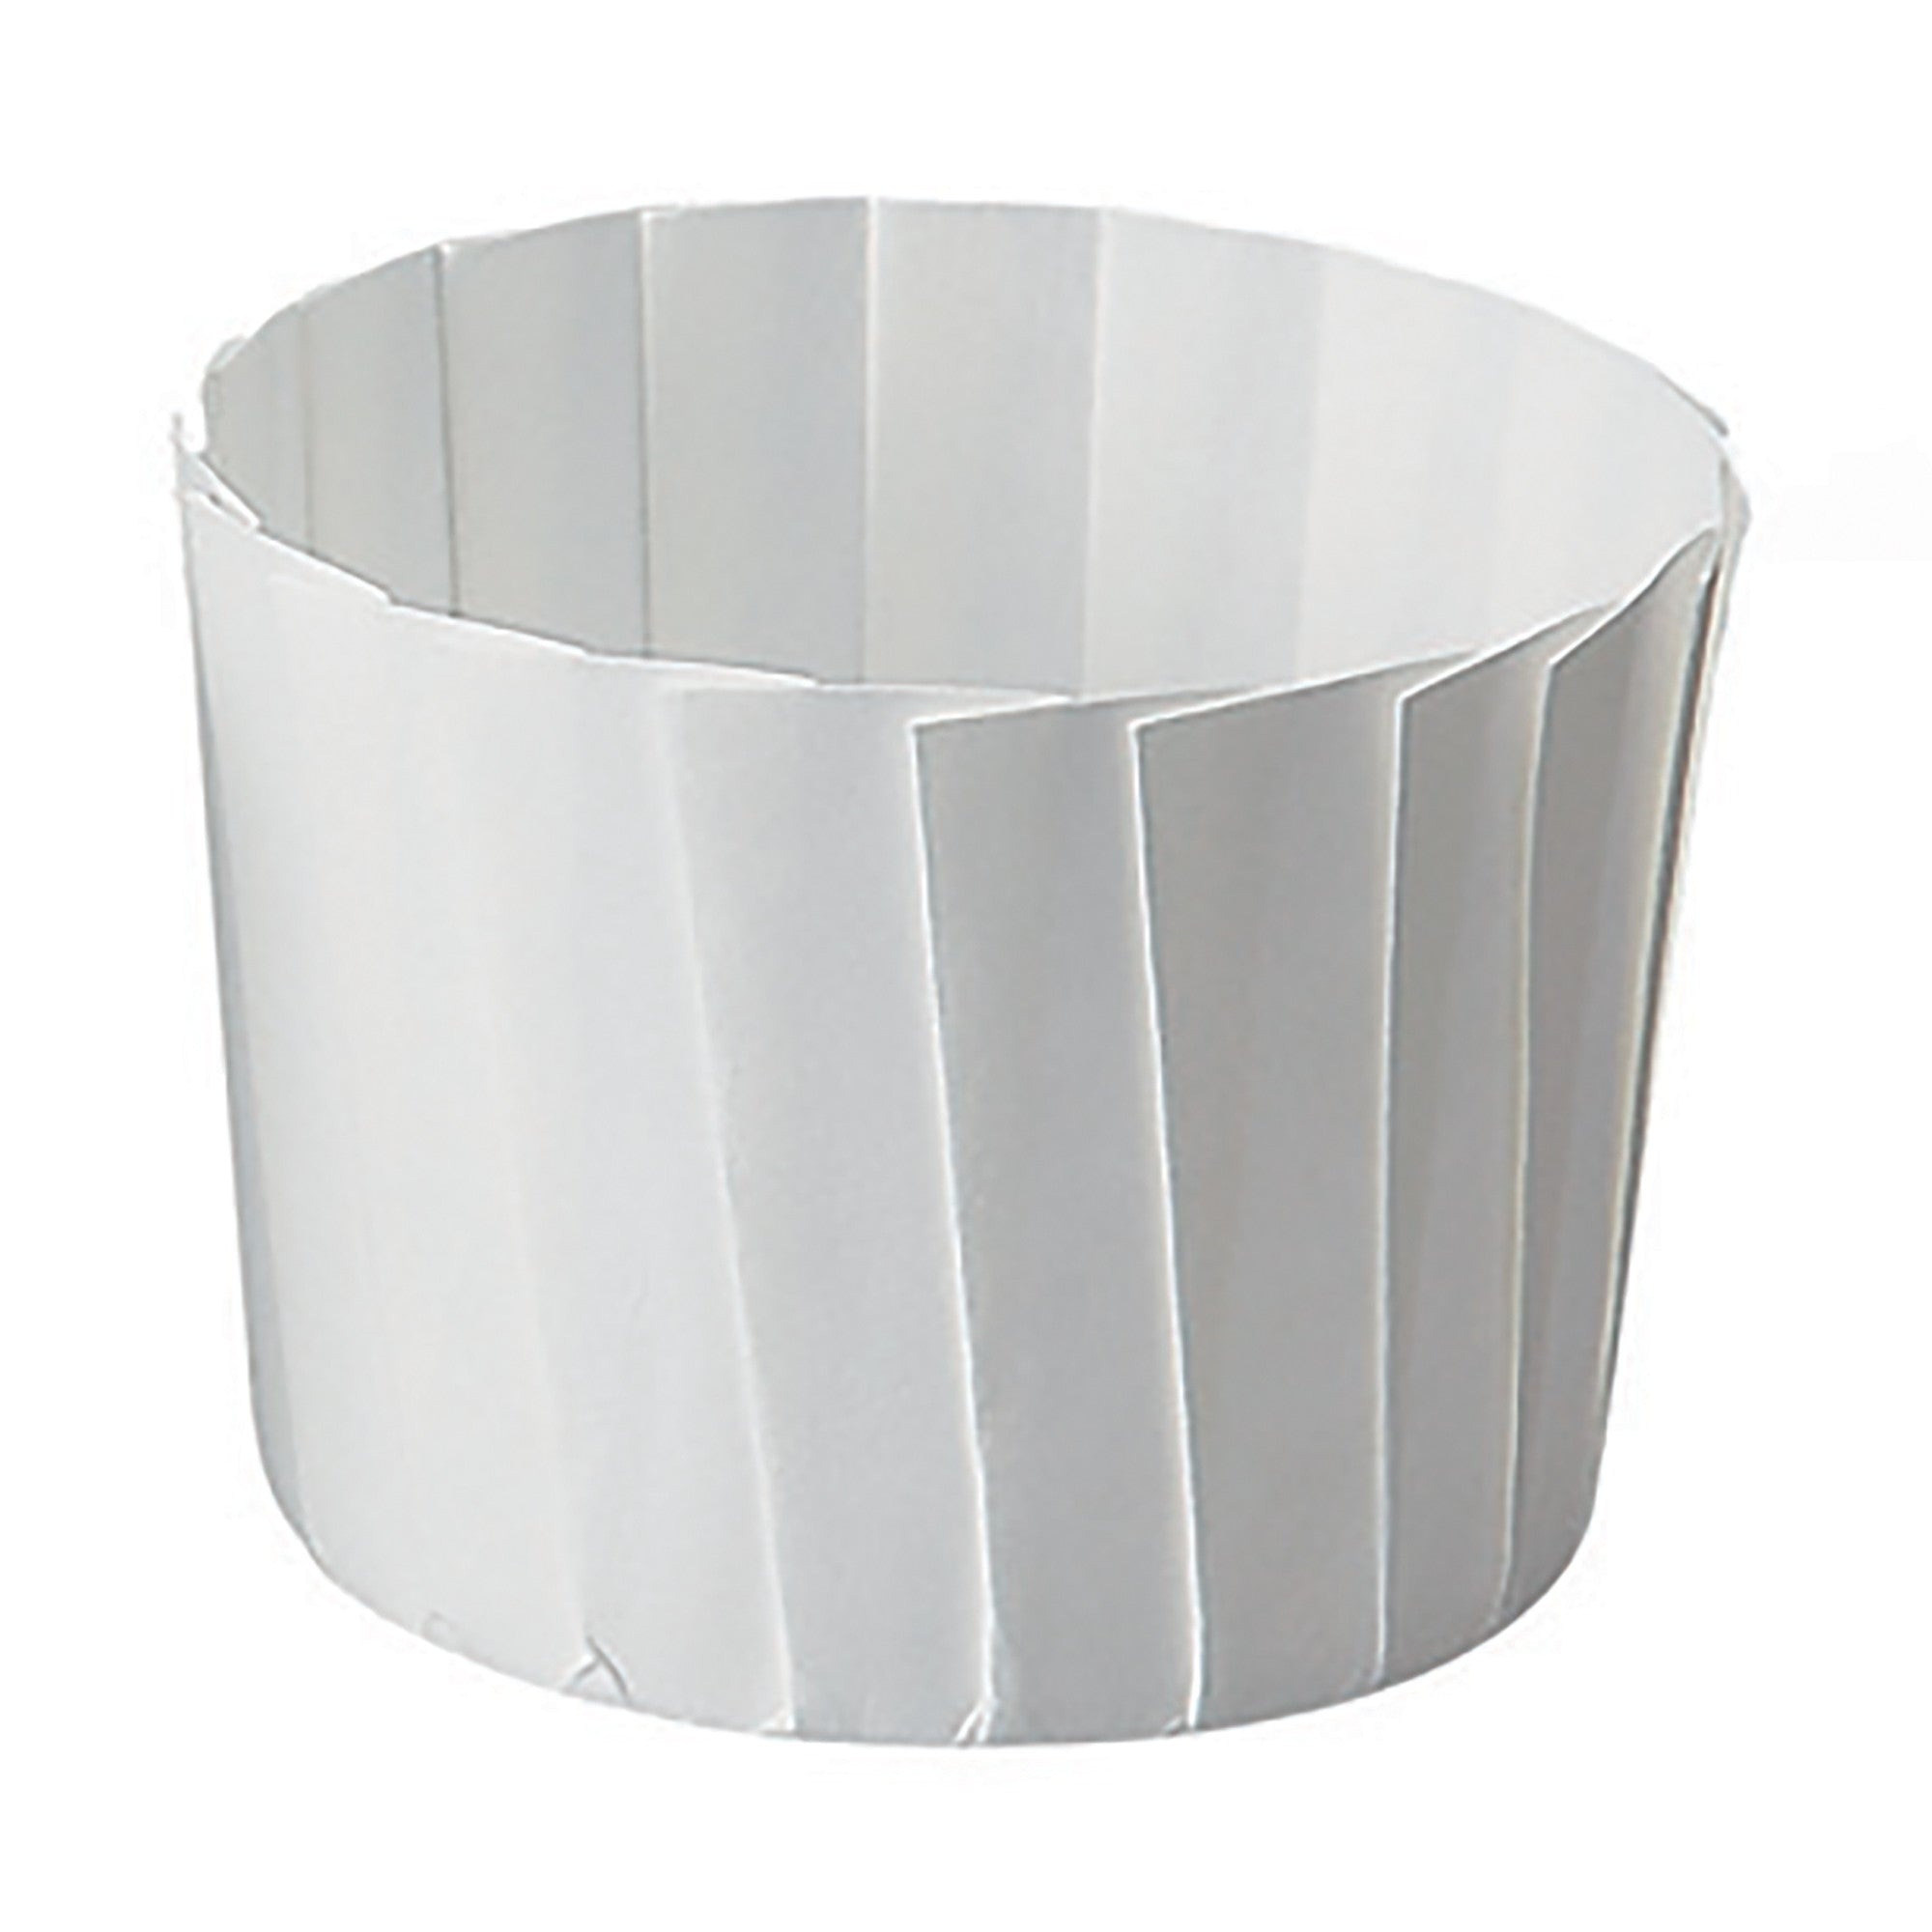 Pleated Baking Cups, GP003 - Welcome Home Brands